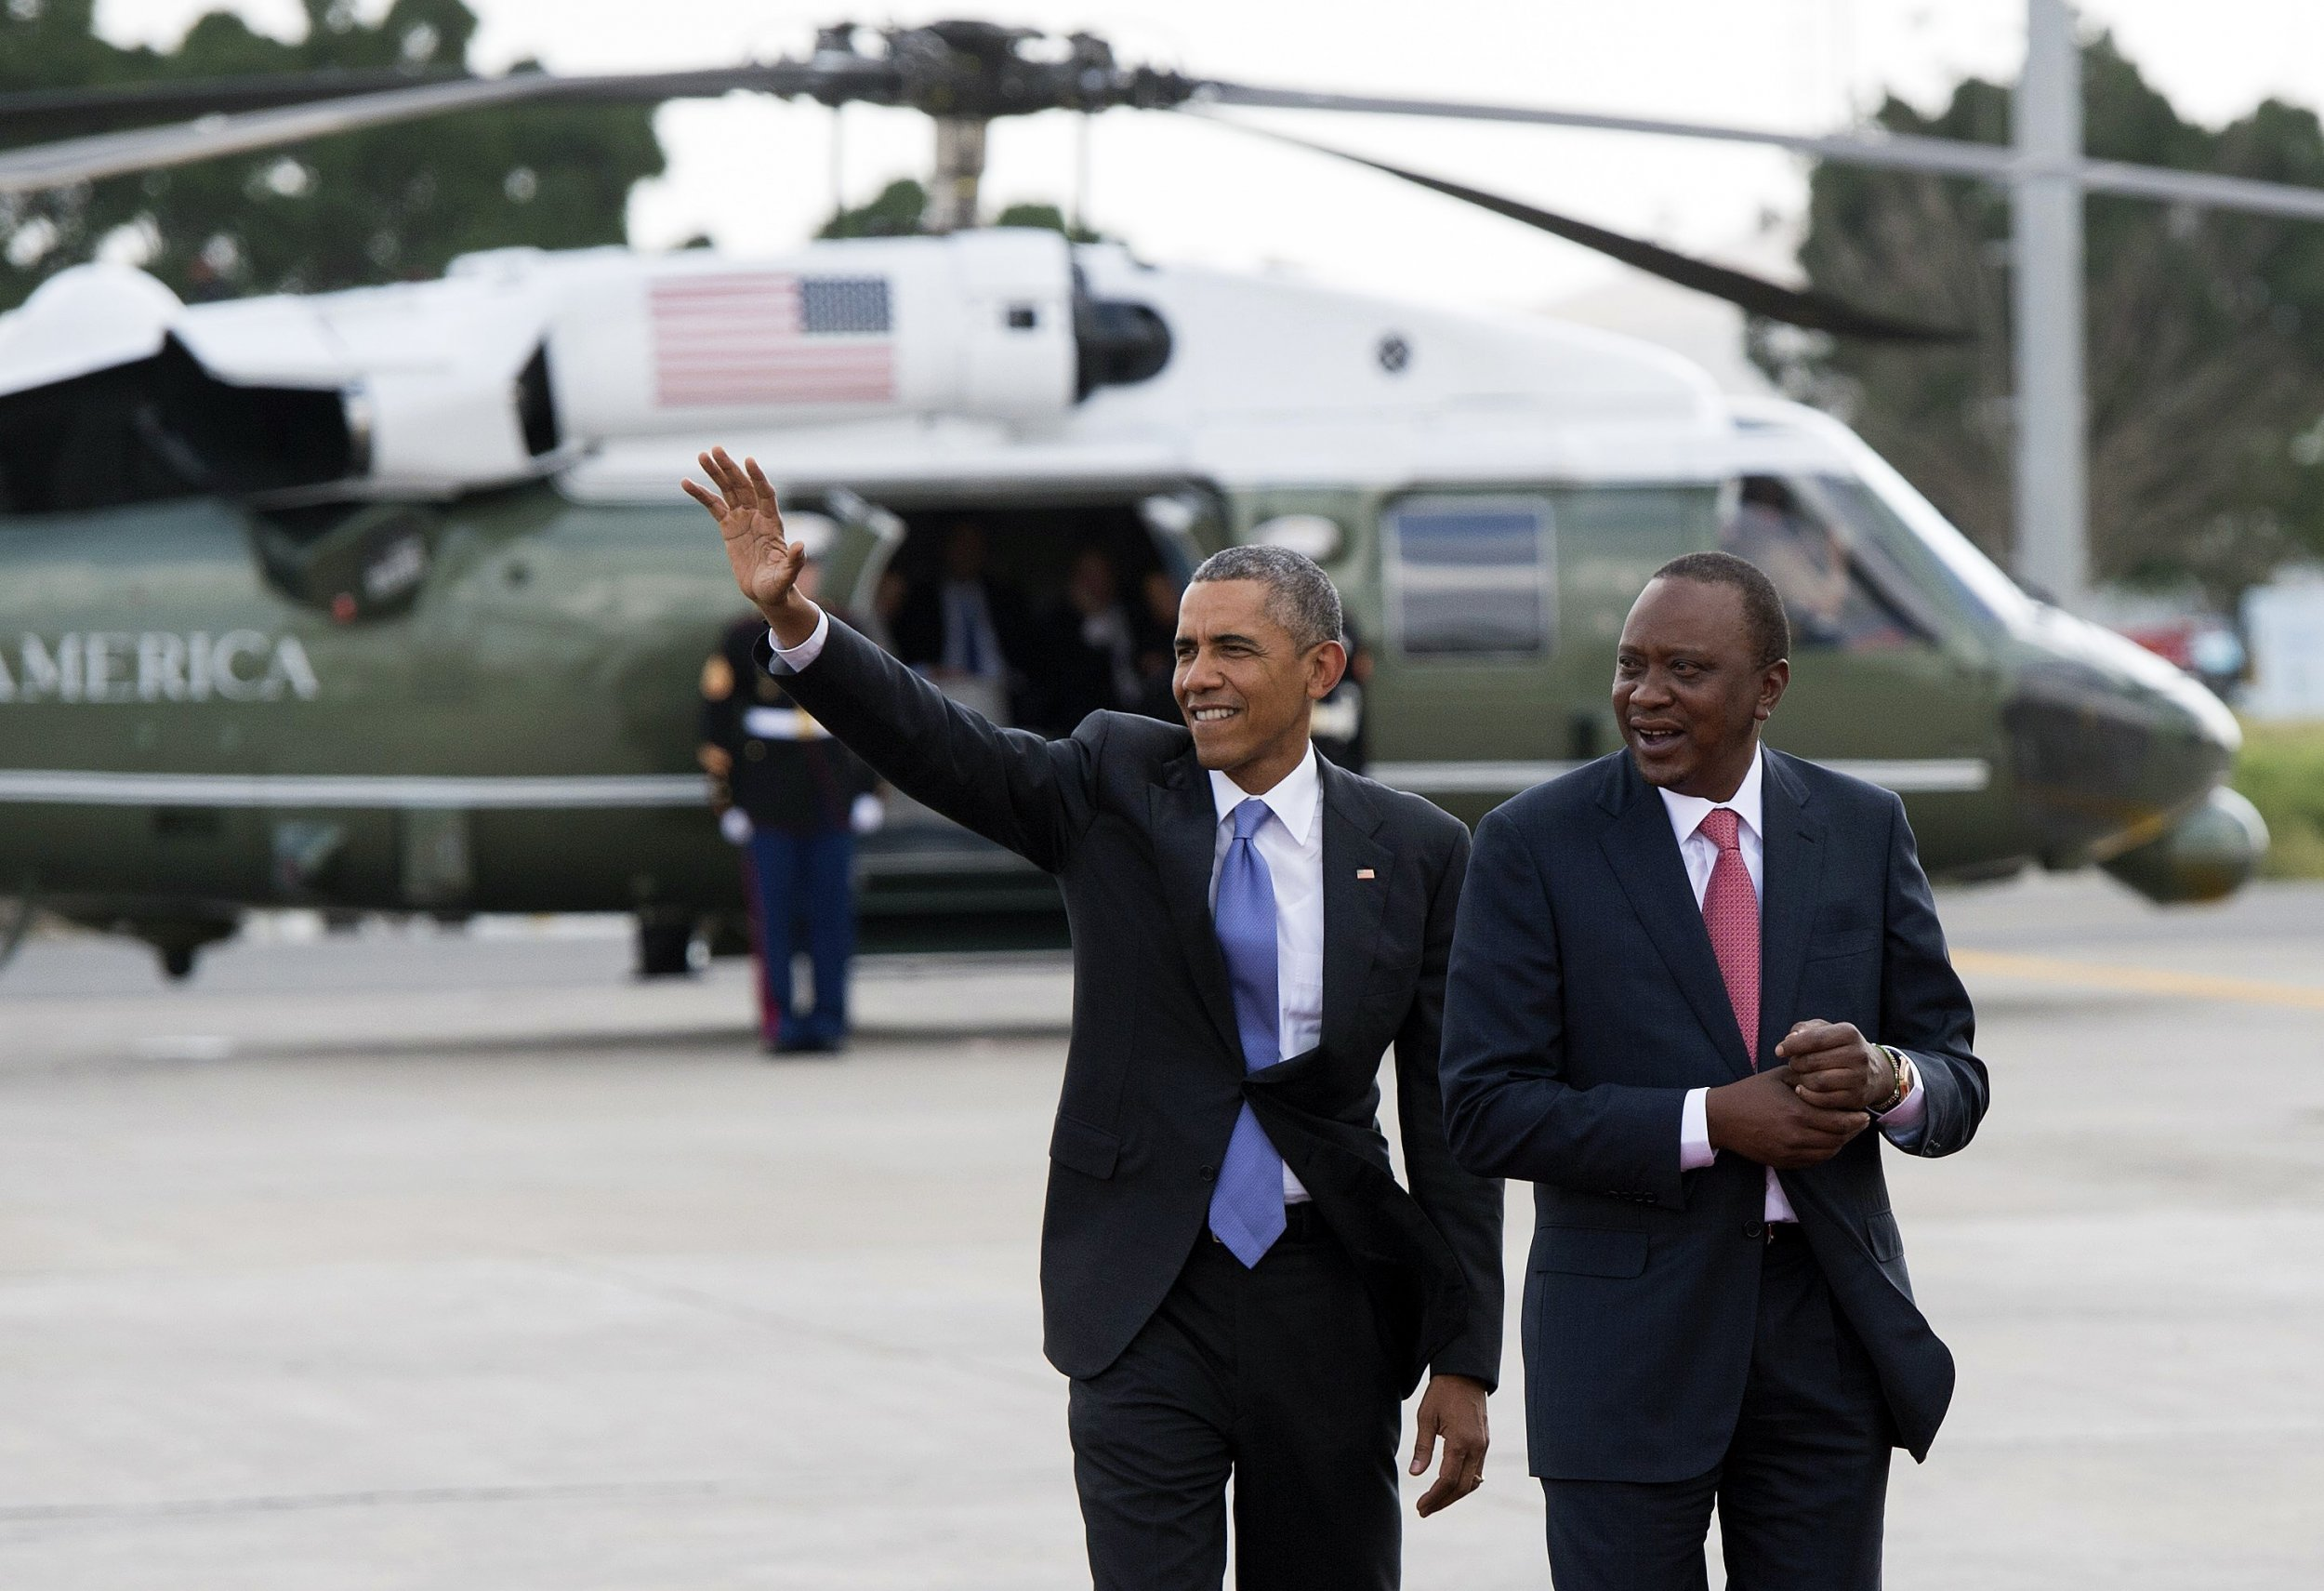 Obama and Trump: Former President Calls for Peace in Kenya Elections While Current POTUS Keeps Silent